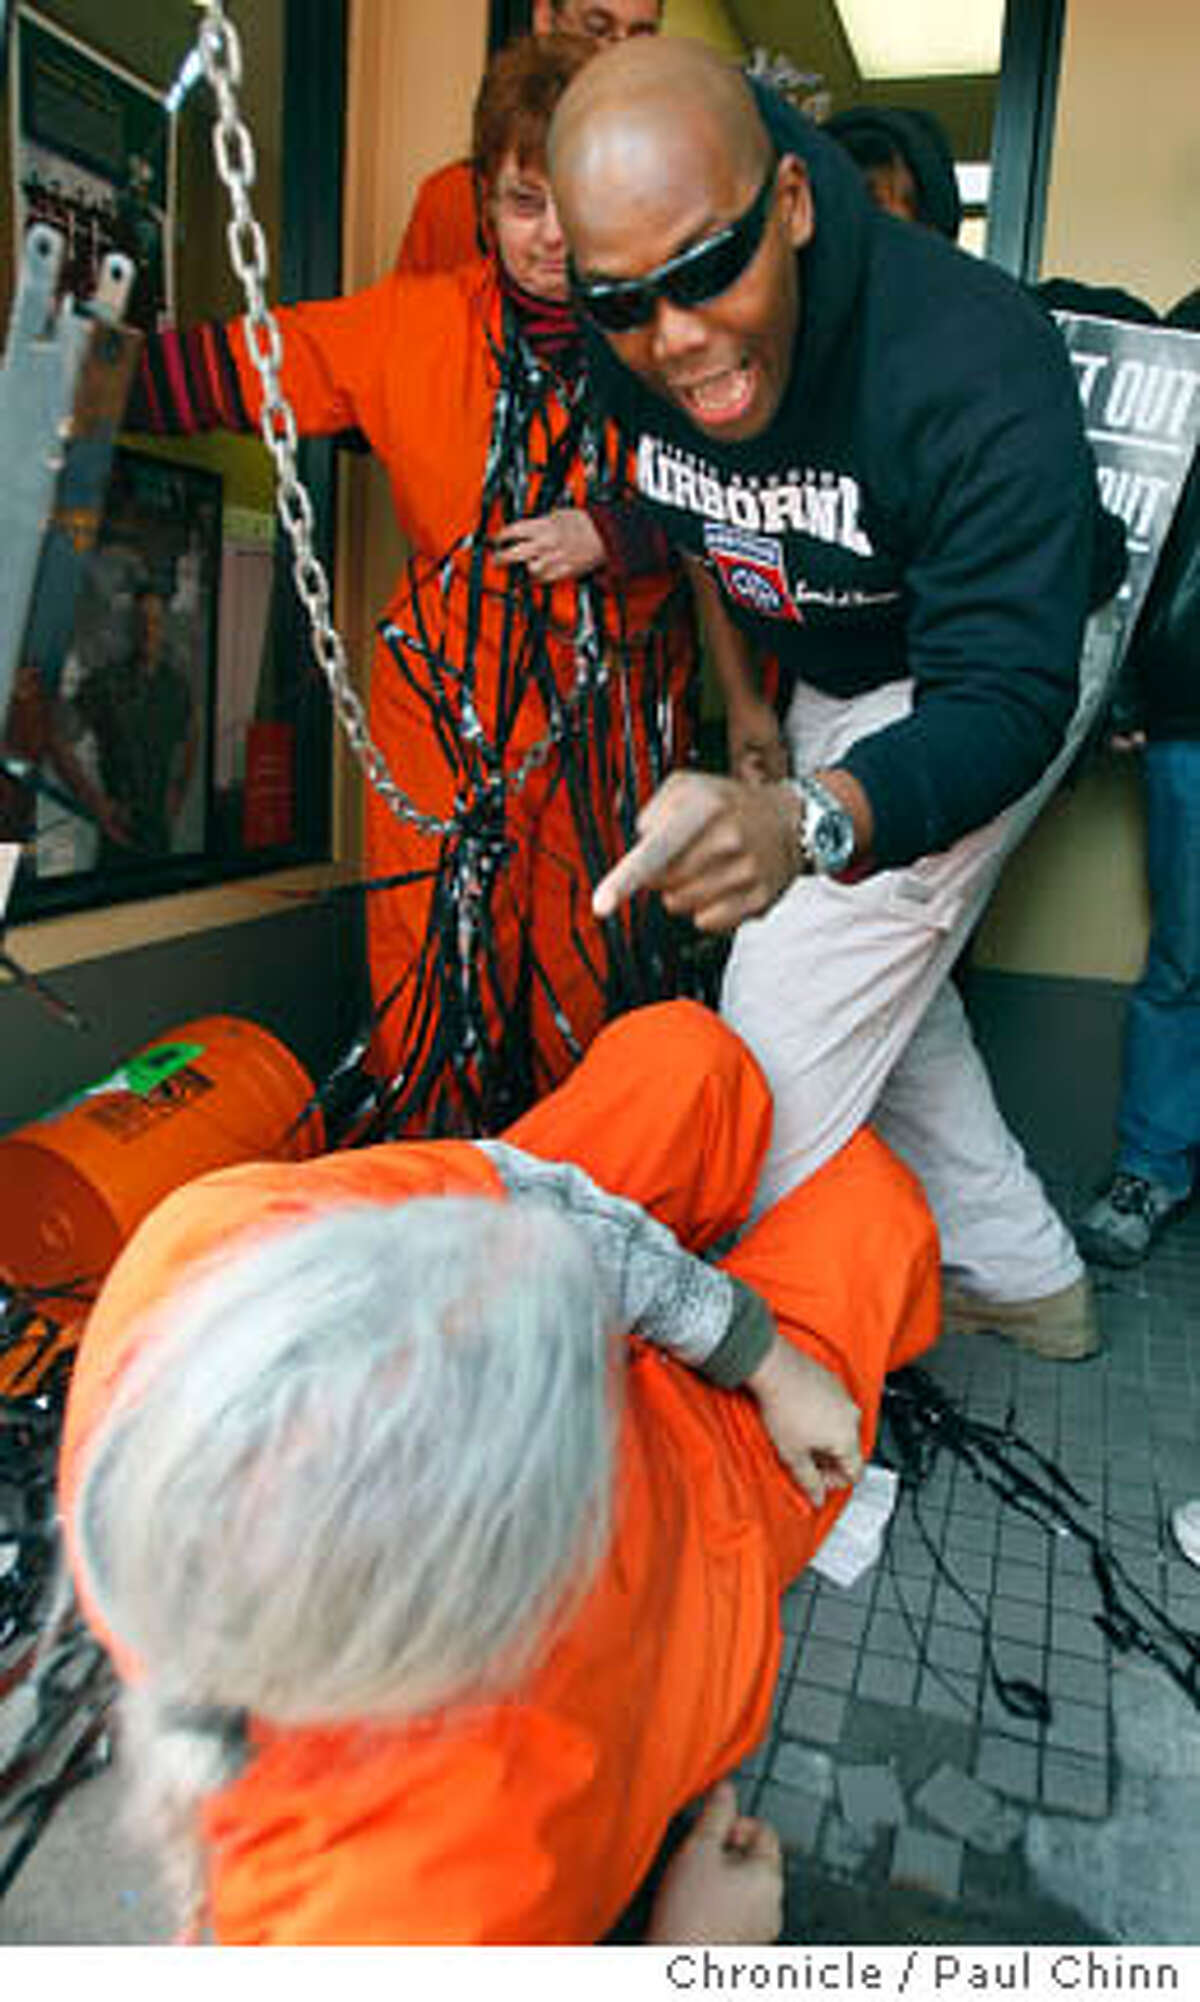 An unidentified man, top, yells at anti-war protester Don Spark and other activists that chained themselves together in an attempt to block the entrance to a Marine Corps. recruitment office in Berkeley, Calif. on Friday, Feb. 1, 2008. Several scuffles ensued when people attempted to enter the office.